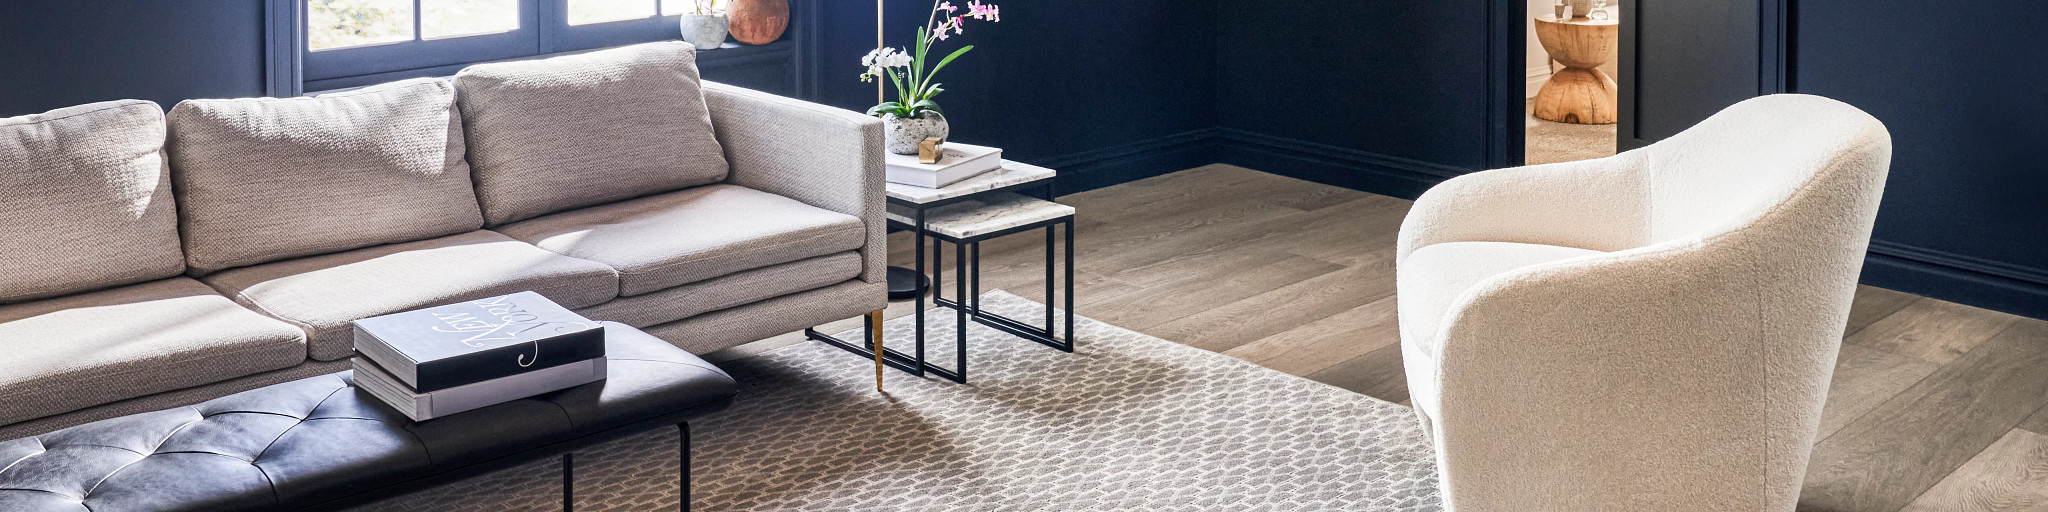 Carpet-Rug-Anderson-Tuftex-ZZ243-Picture-Purrfect-00551-Hardwood-AA829-Grand-Estate-15033-Living-Room-2021